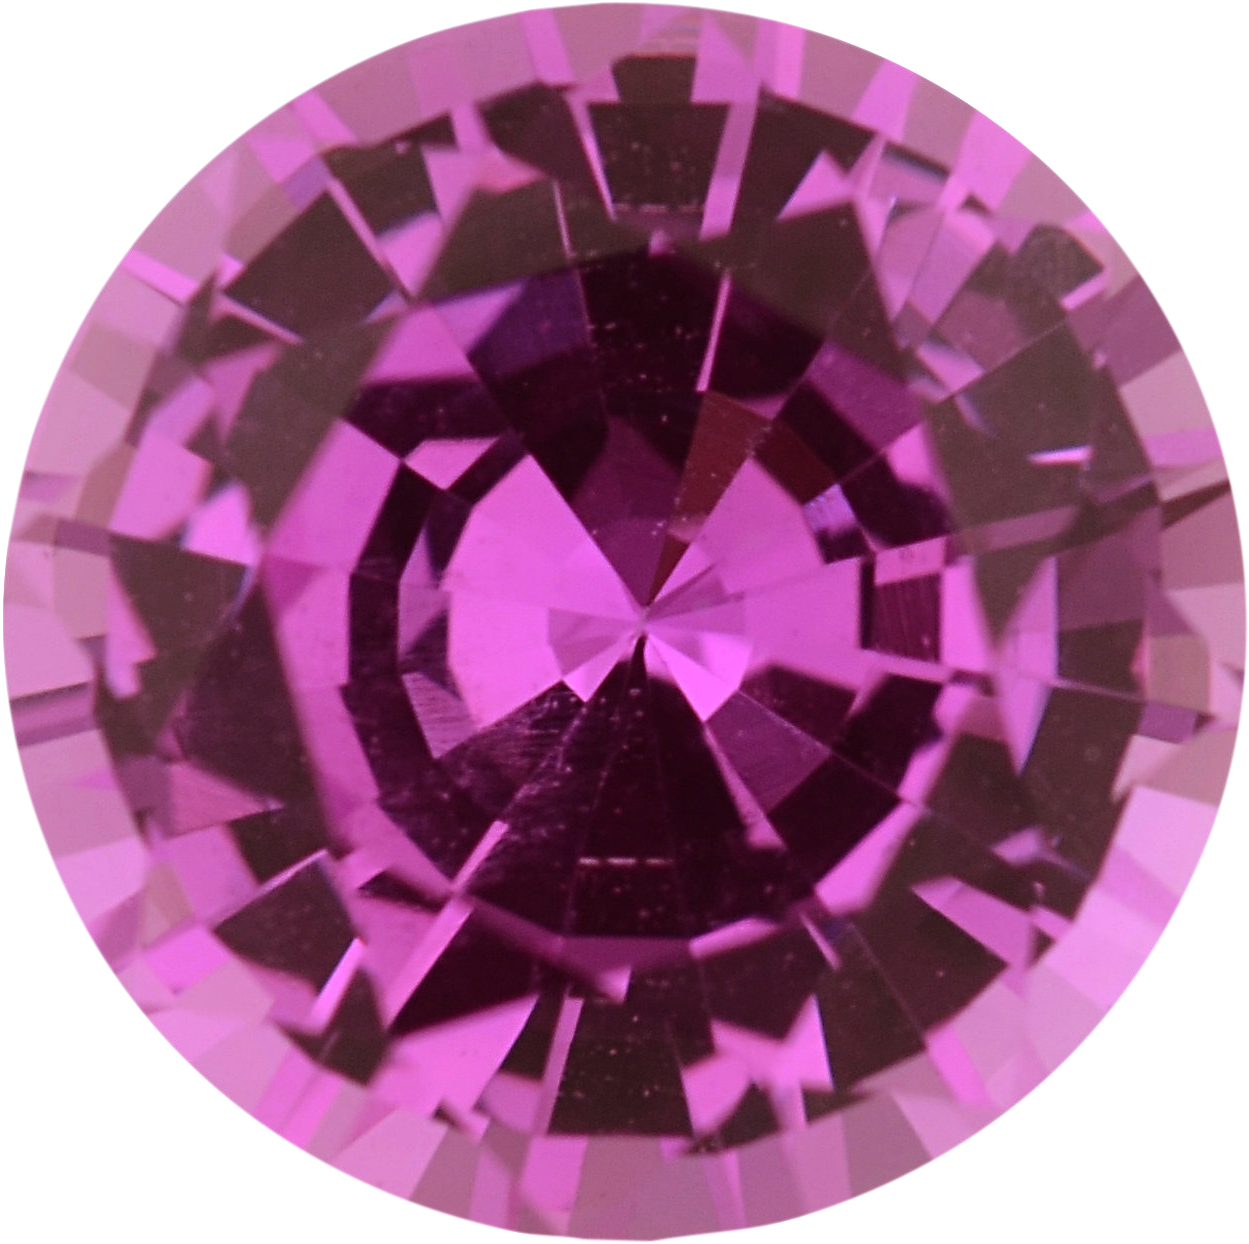 Fine Sapphire Loose Gem in Round Cut, Light Red Purple Or Purple Red, 6 mm, 0.96 Carats